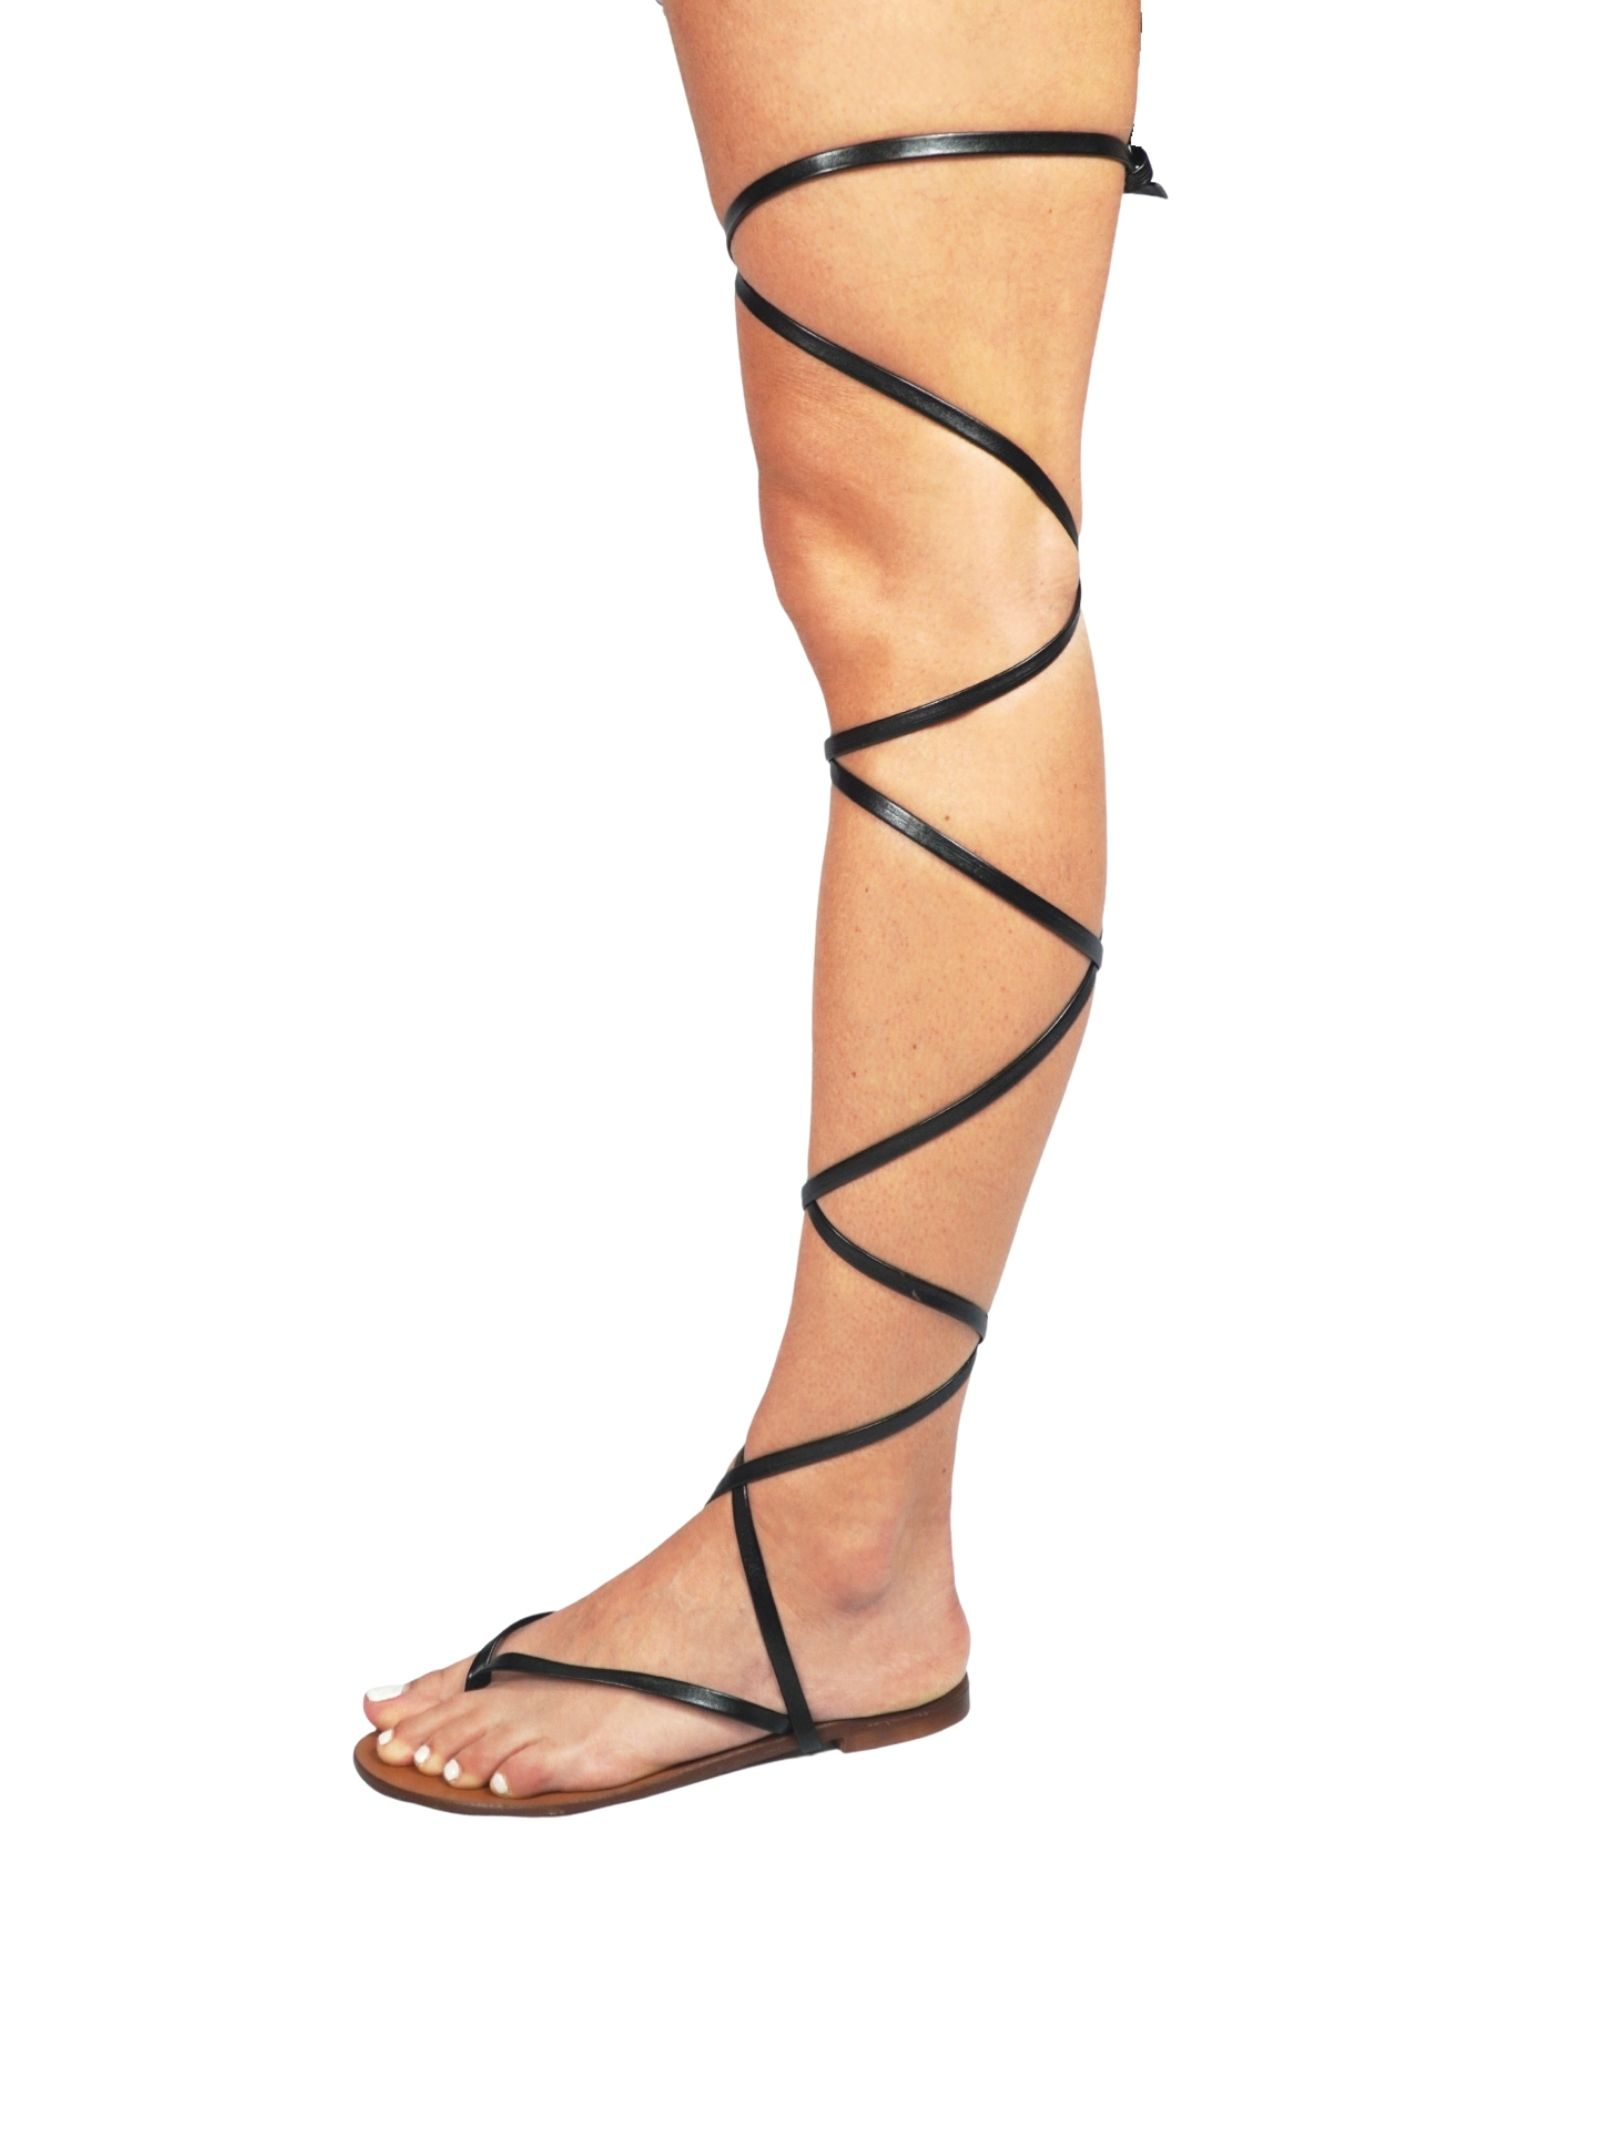 Women's Shoes Flat Flip Flops Sandals in Black Eco Leather with Long Laces up to the Knee Sandro Rosi | Flat sandals | 3295001